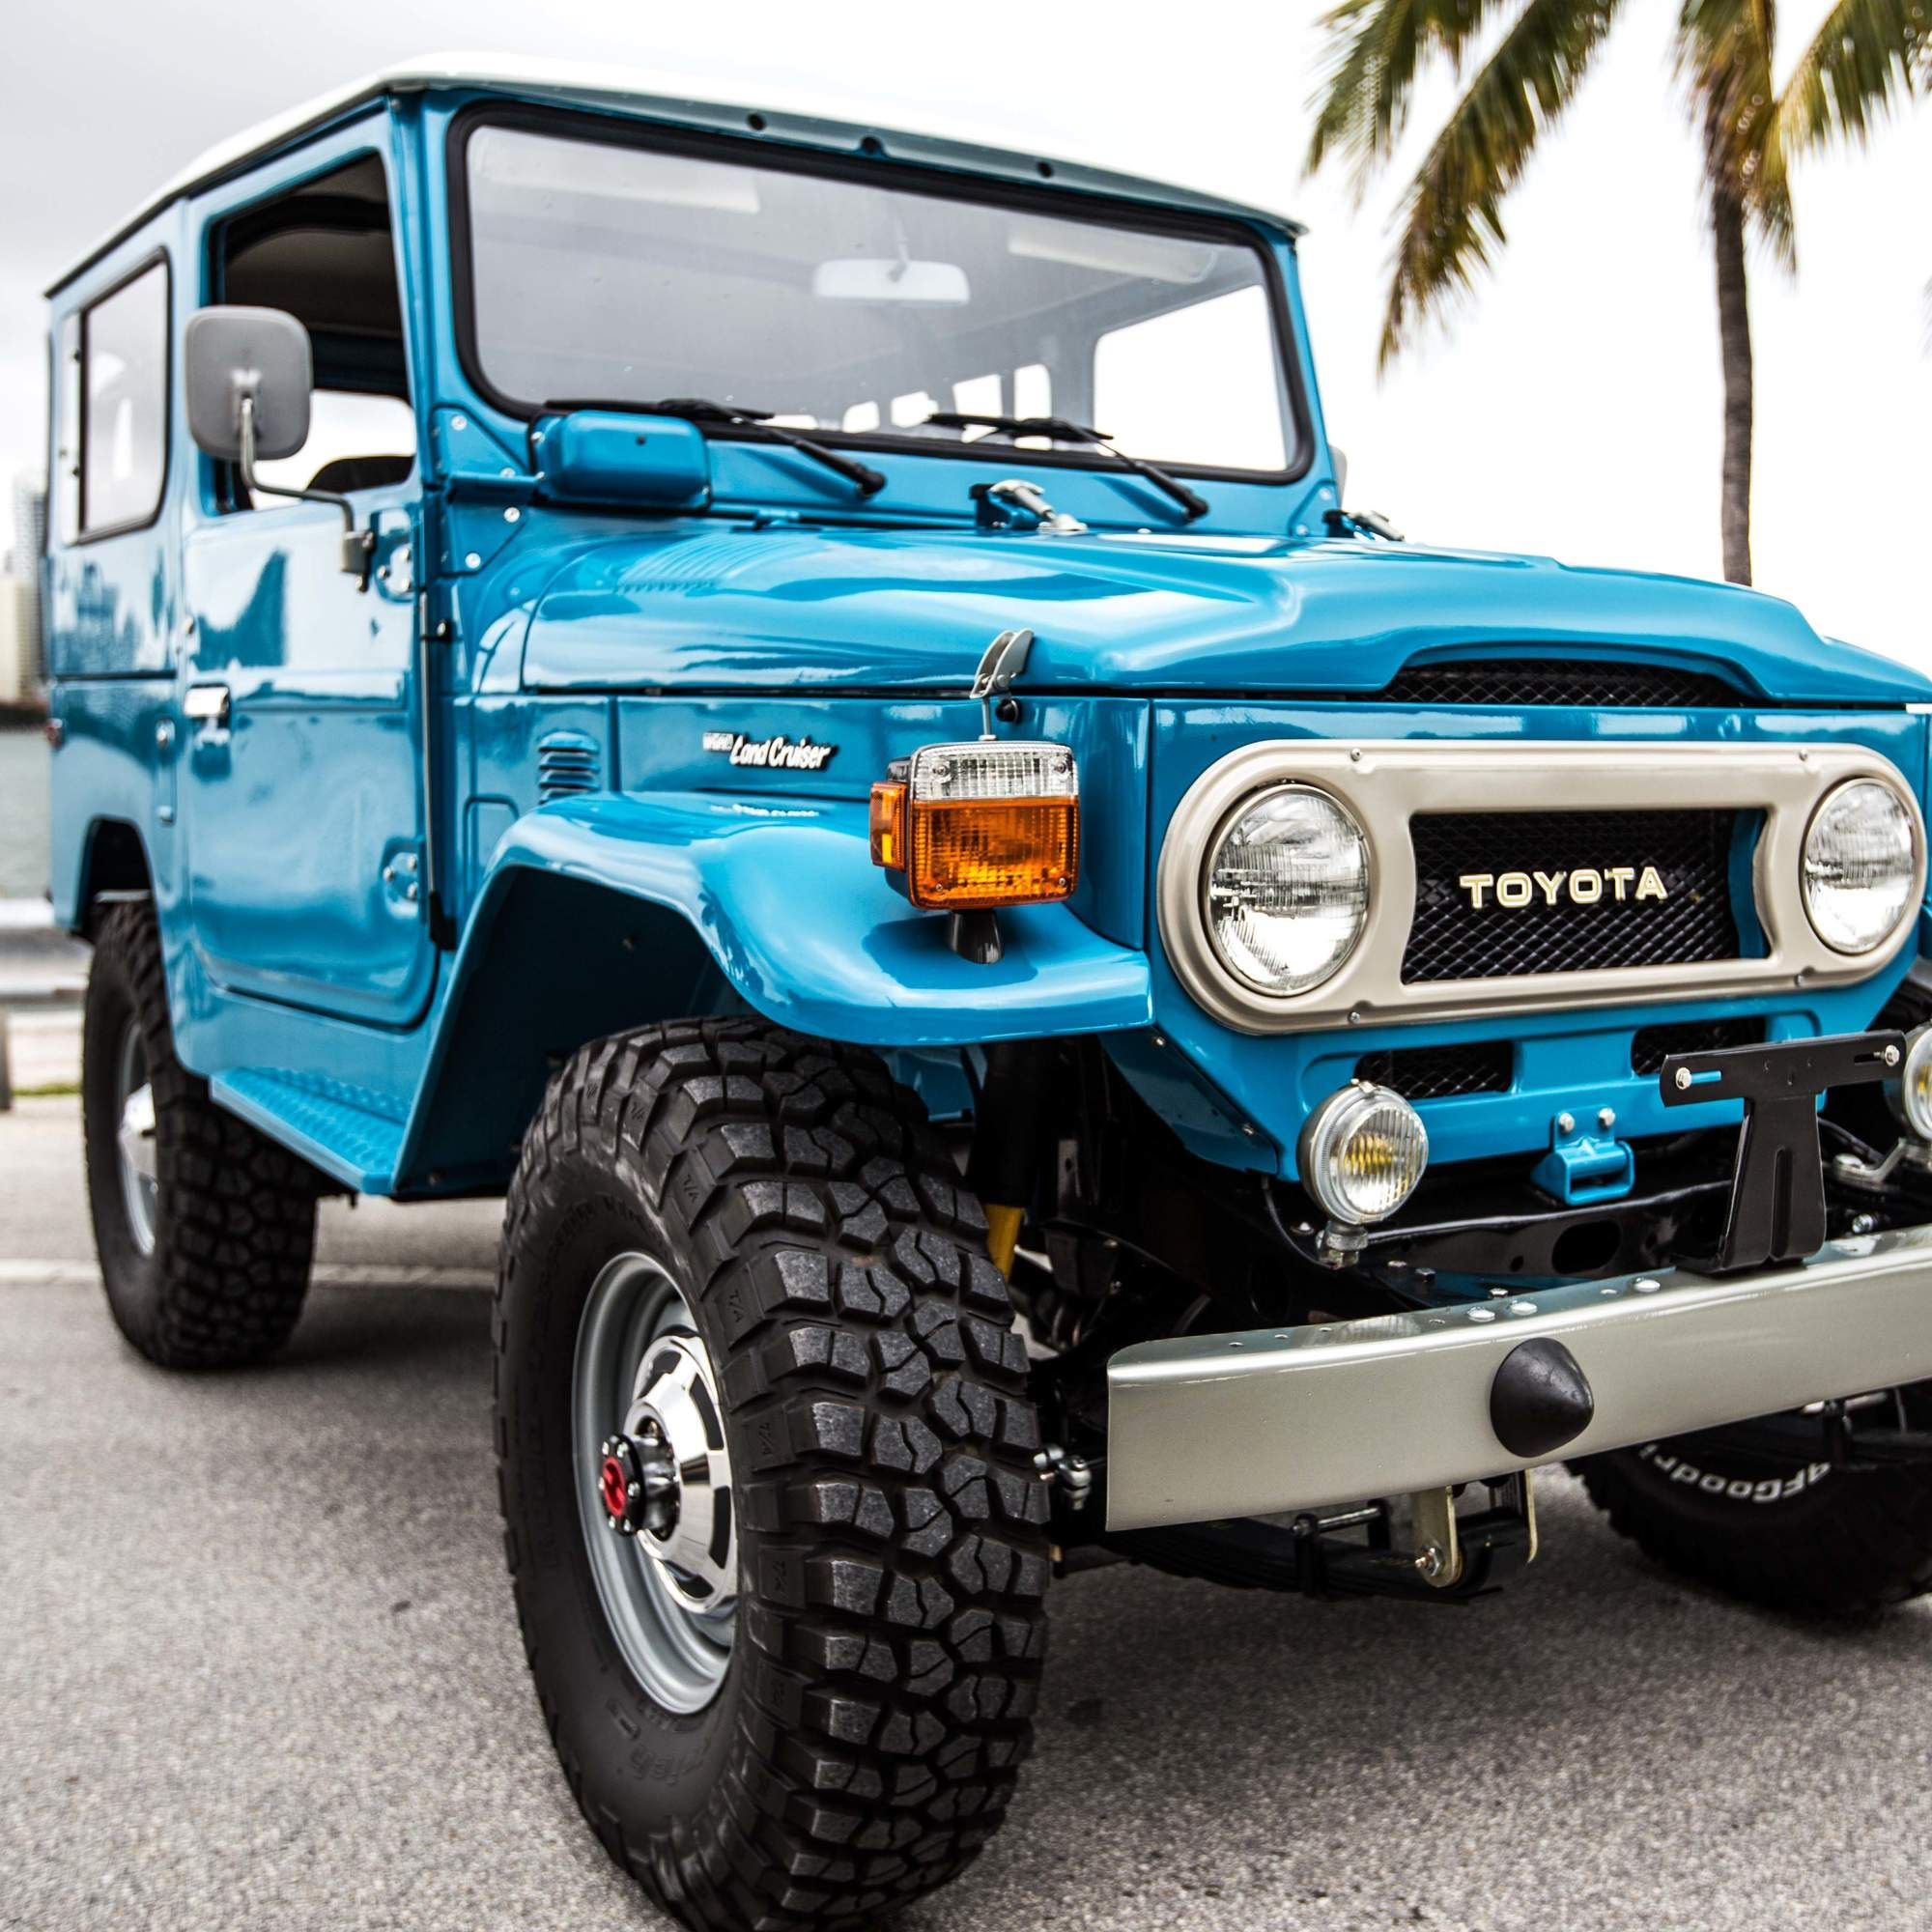 Perfectly Restored Vintage Land Cruisers That Won't Cost a